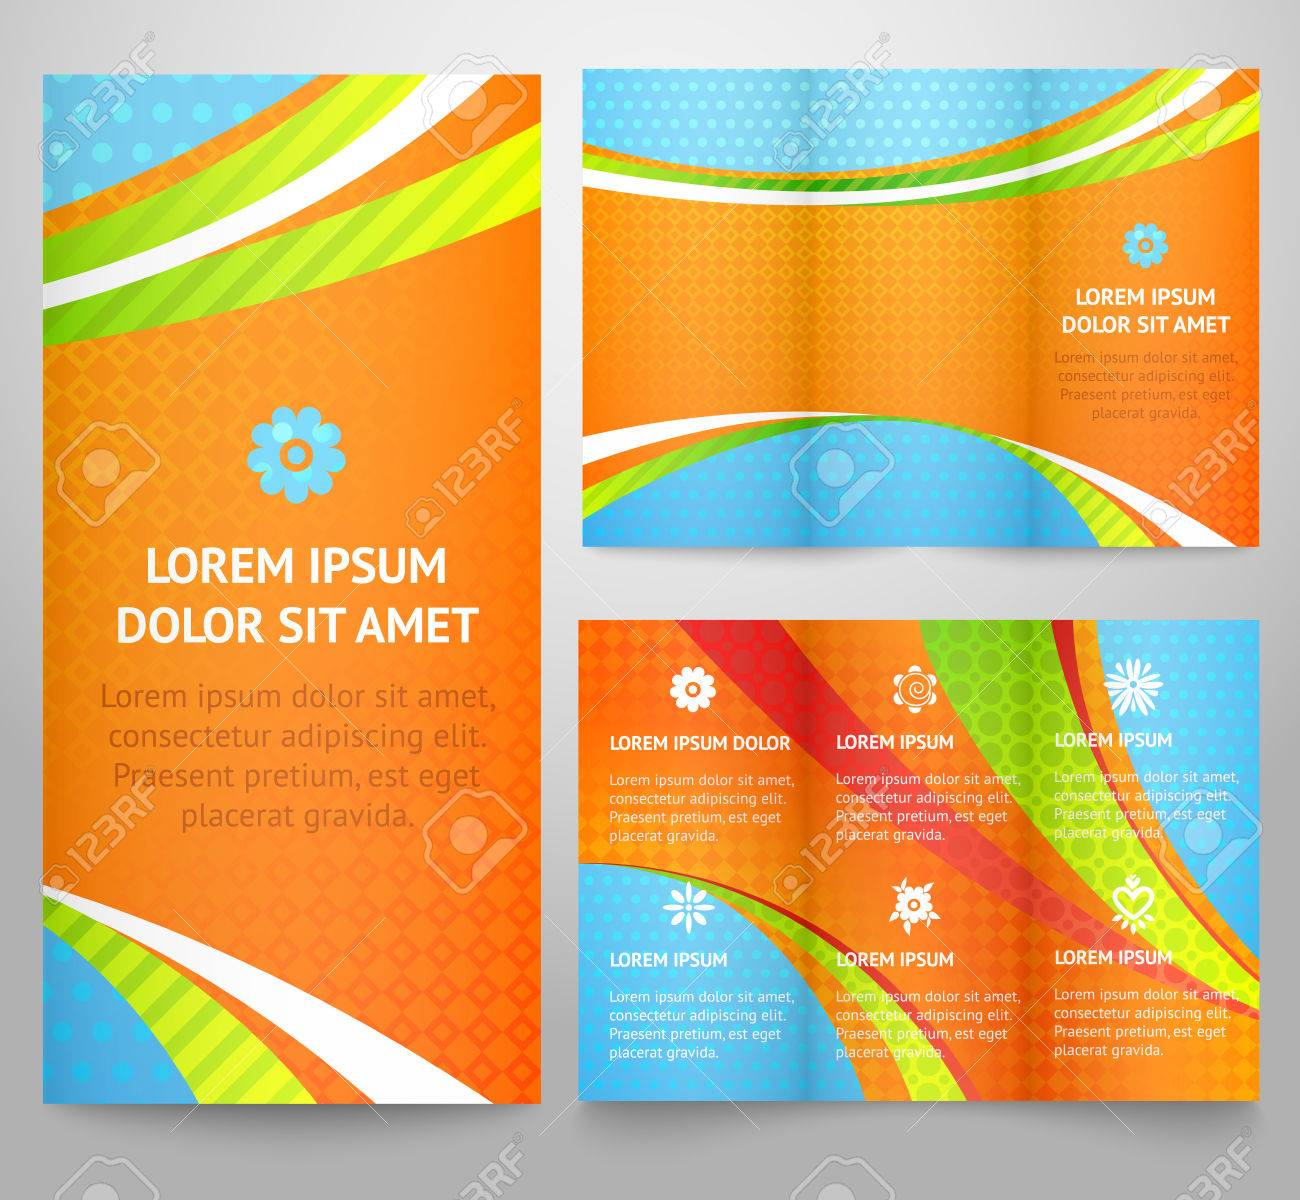 professional three fold business flyer template corporate professional three fold business flyer template corporate brochure or cover design print vector